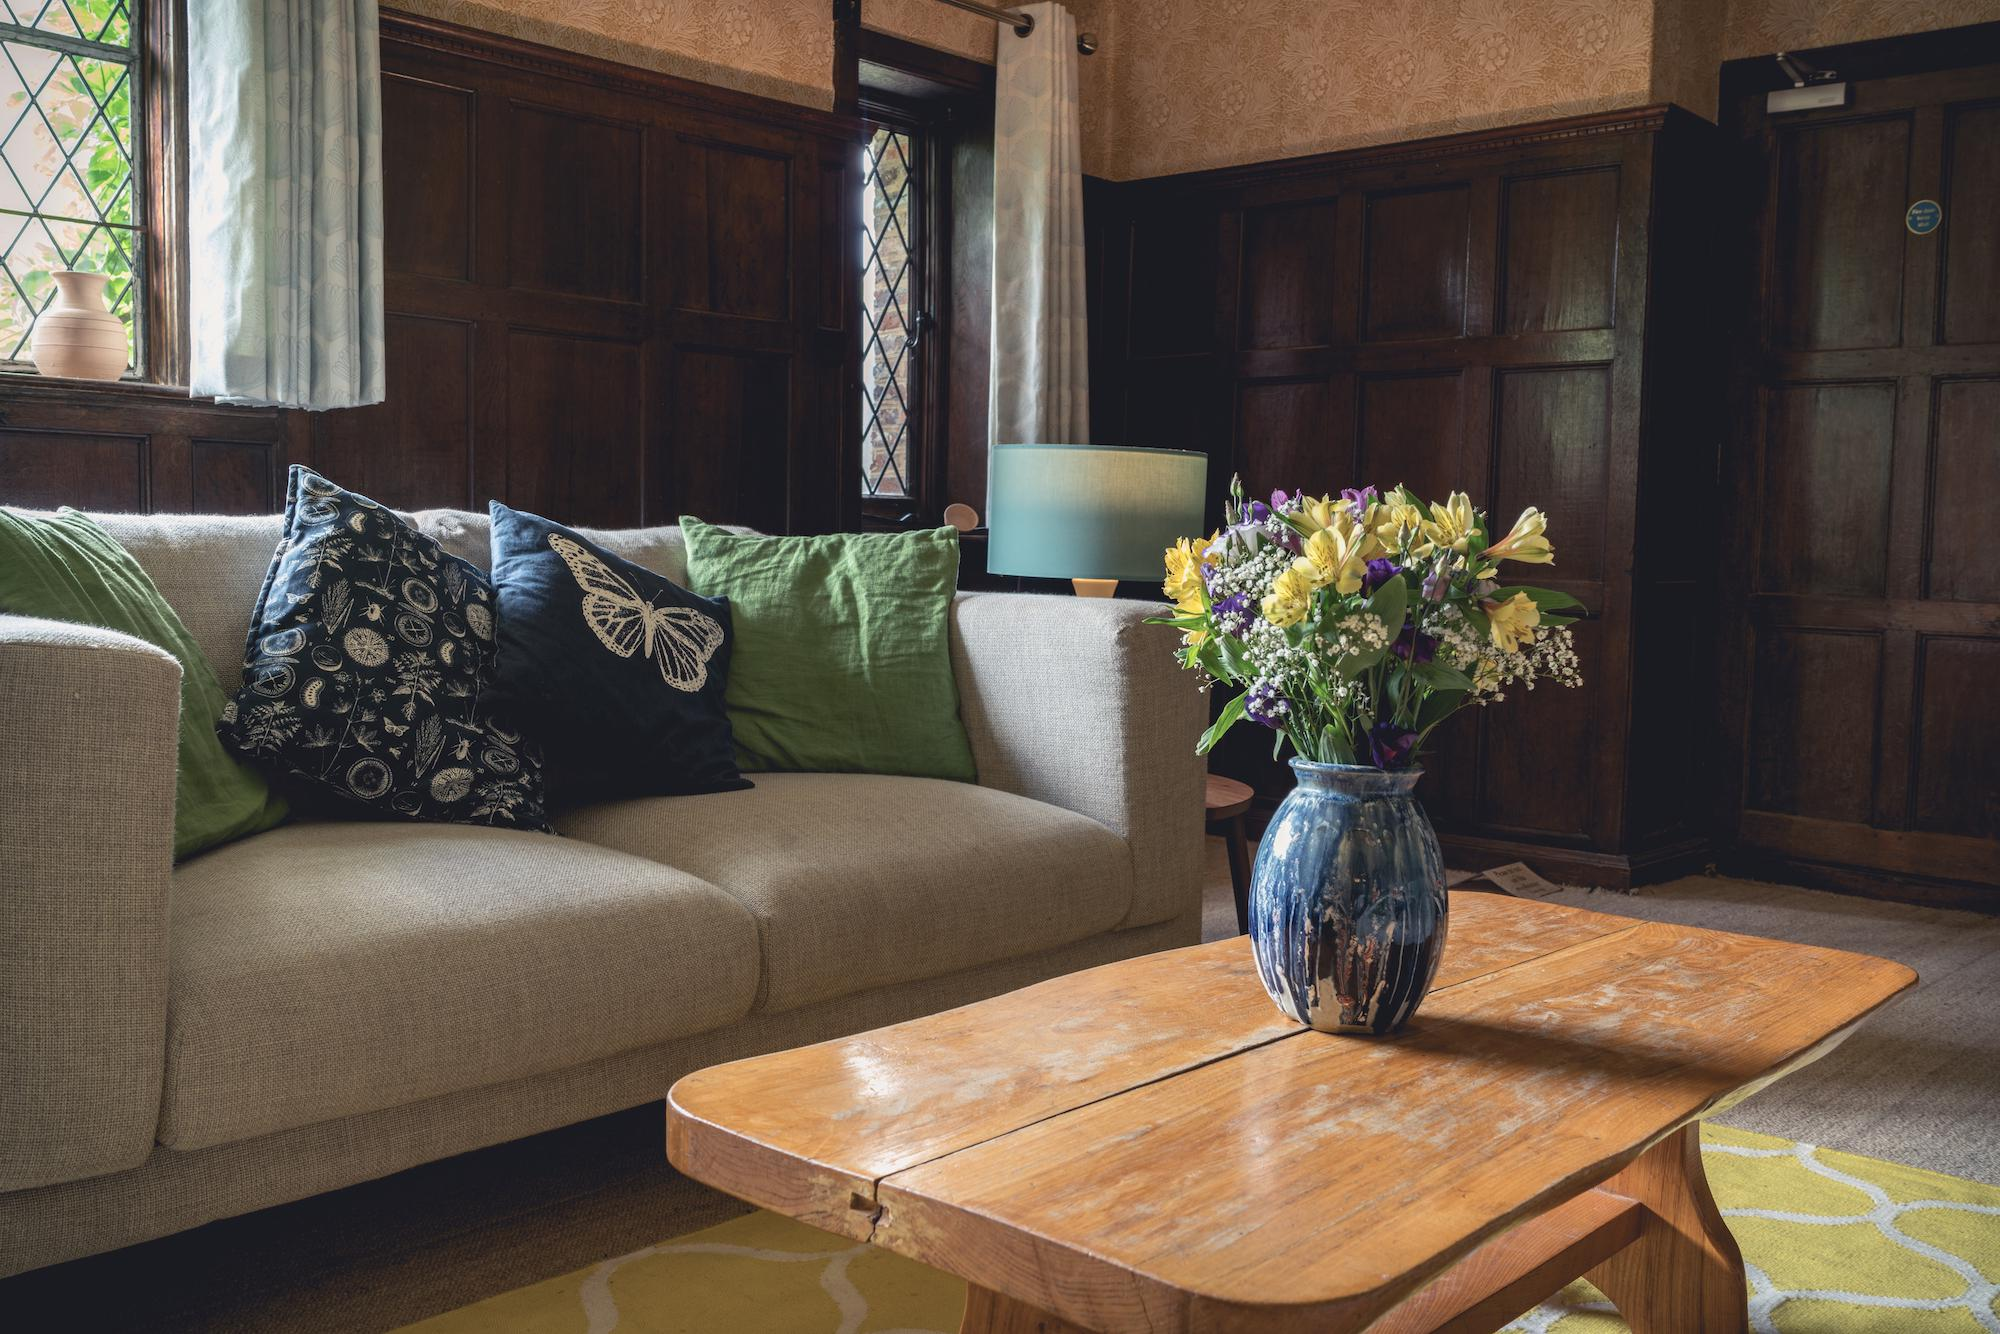 Self-Catering in Sevenoaks holidays at Cool Places